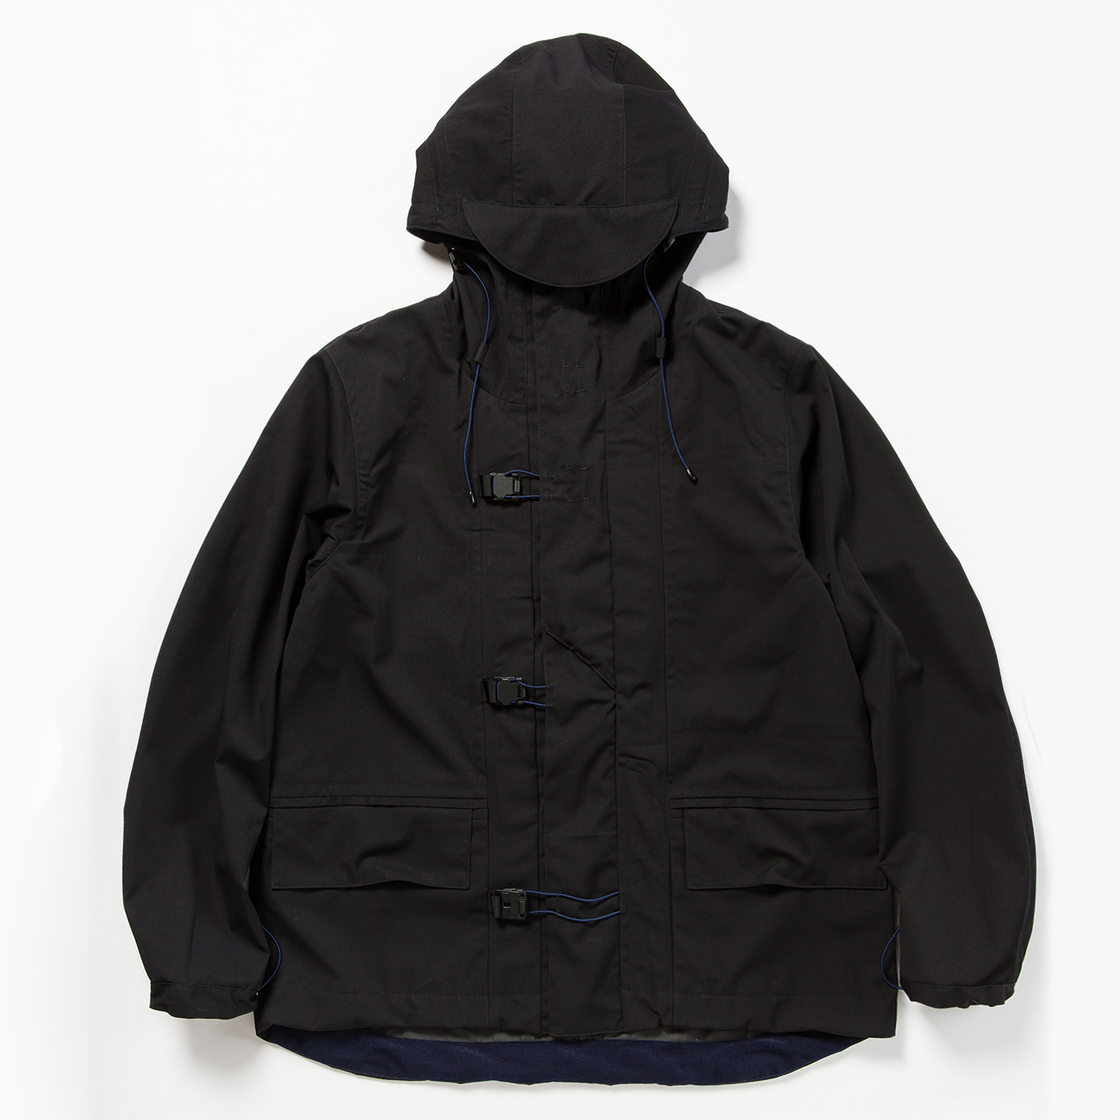 Waterproof Operation Jacket